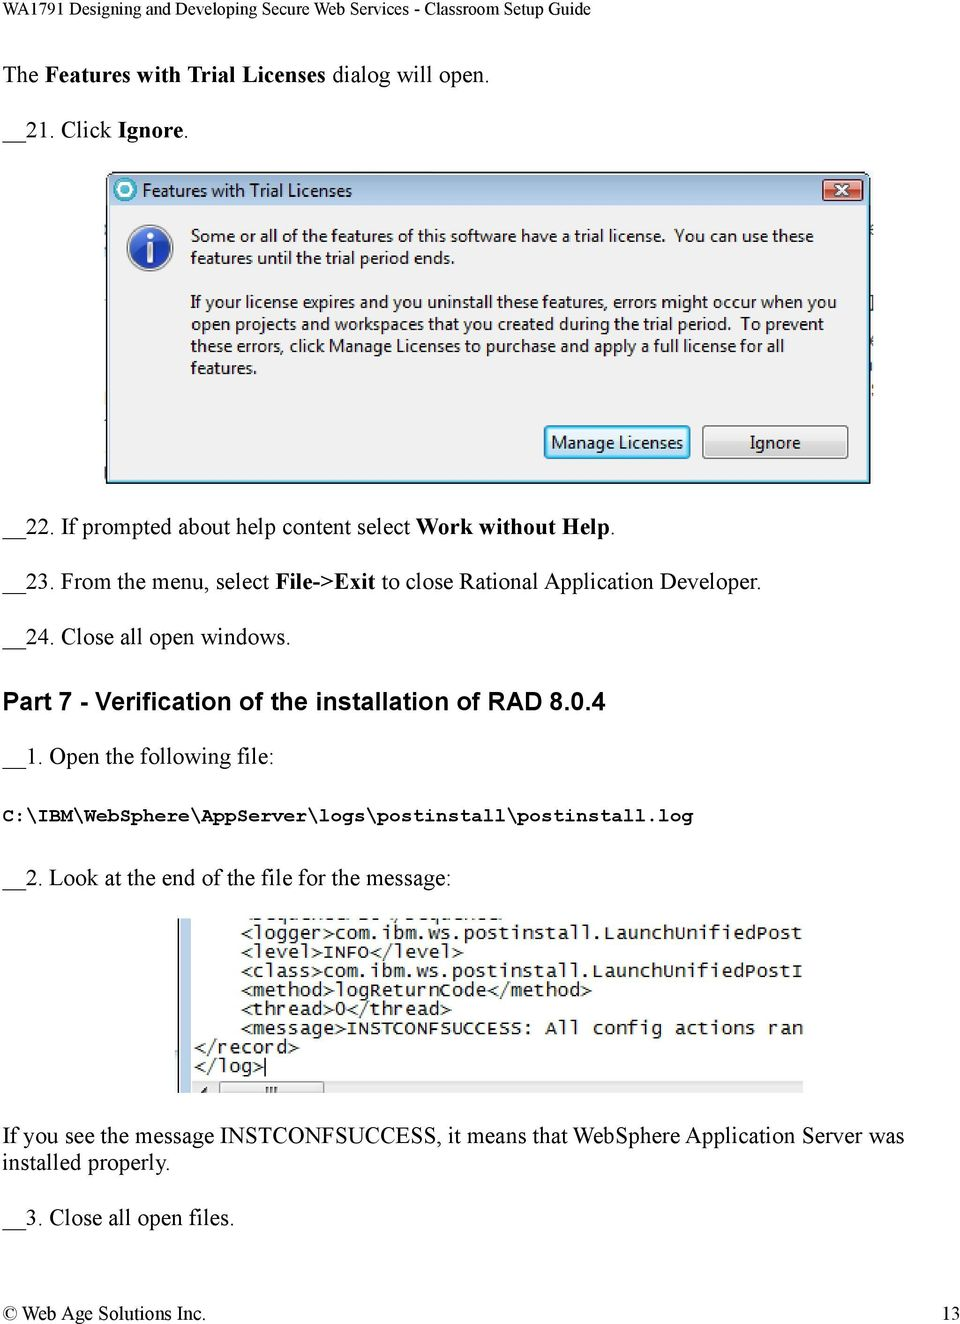 Part 7 - Verification of the installation of RAD 8.0.4 1. Open the following file: C:\IBM\WebSphere\AppServer\logs\postinstall\postinstall.log 2.